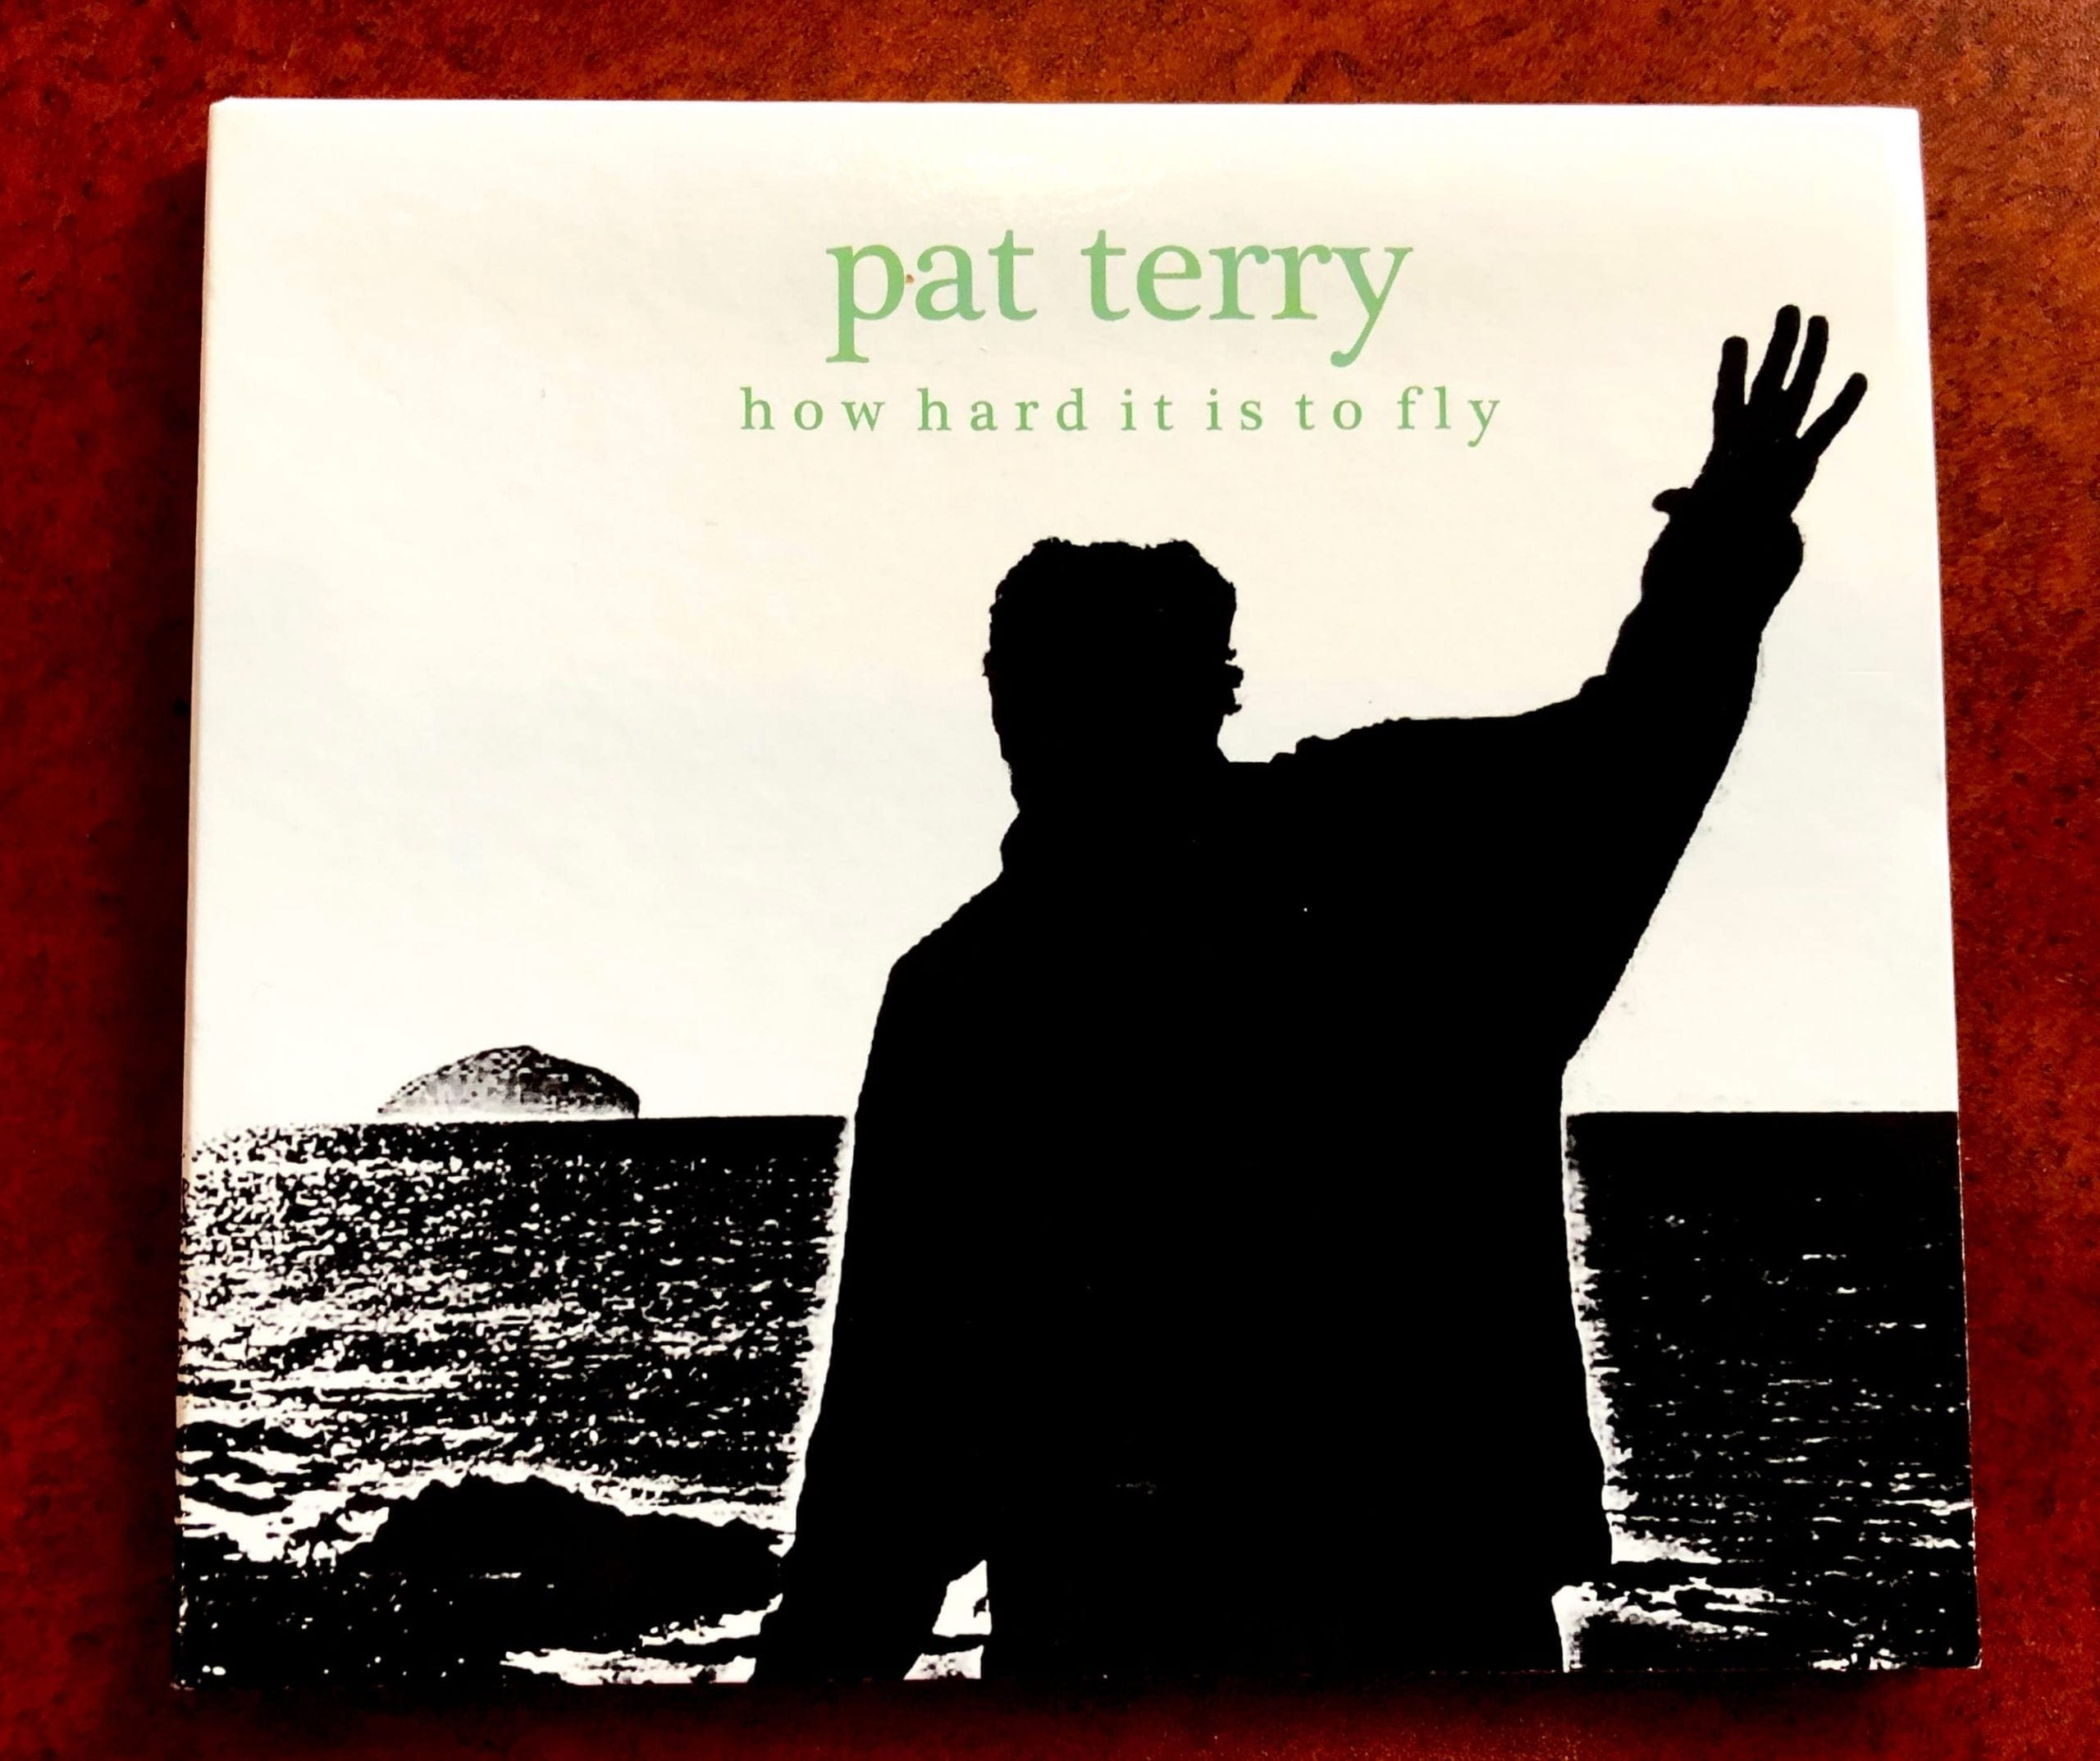 ON and ON: Pat Terry's new CD offers upbeat reflections on life's challenges and joys